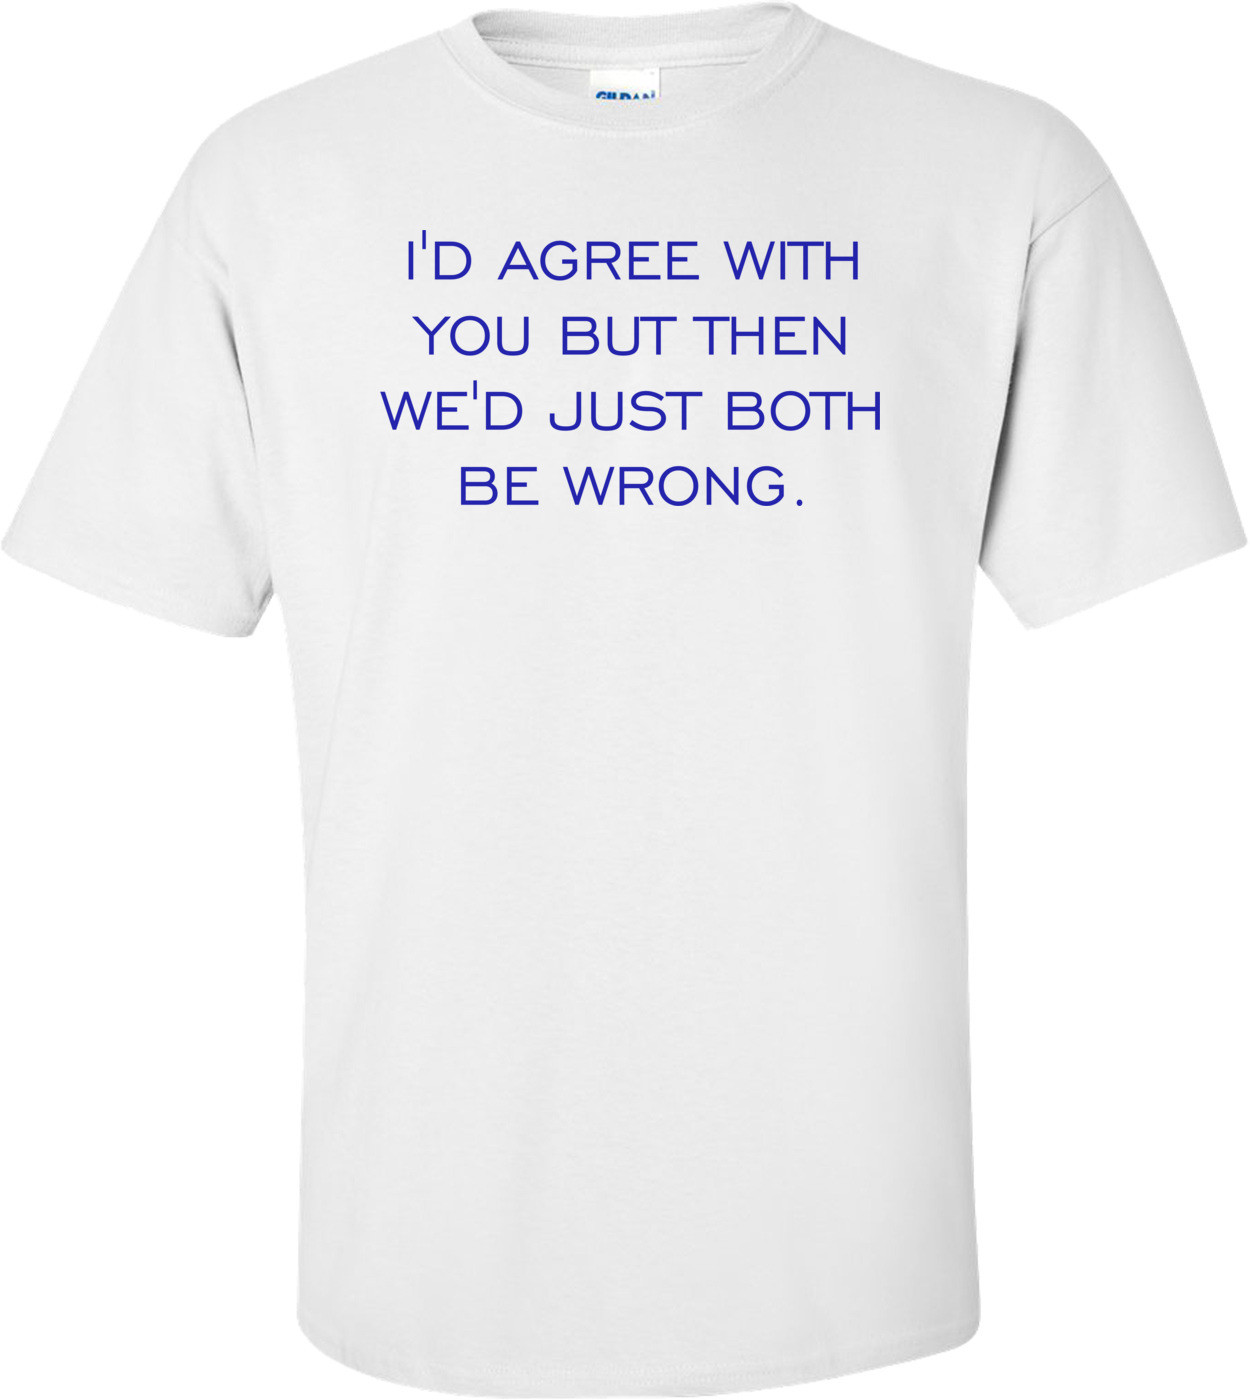 I'D AGREE WITH YOU BUT THEN WE'D JUST BOTH BE WRONG. Shirt